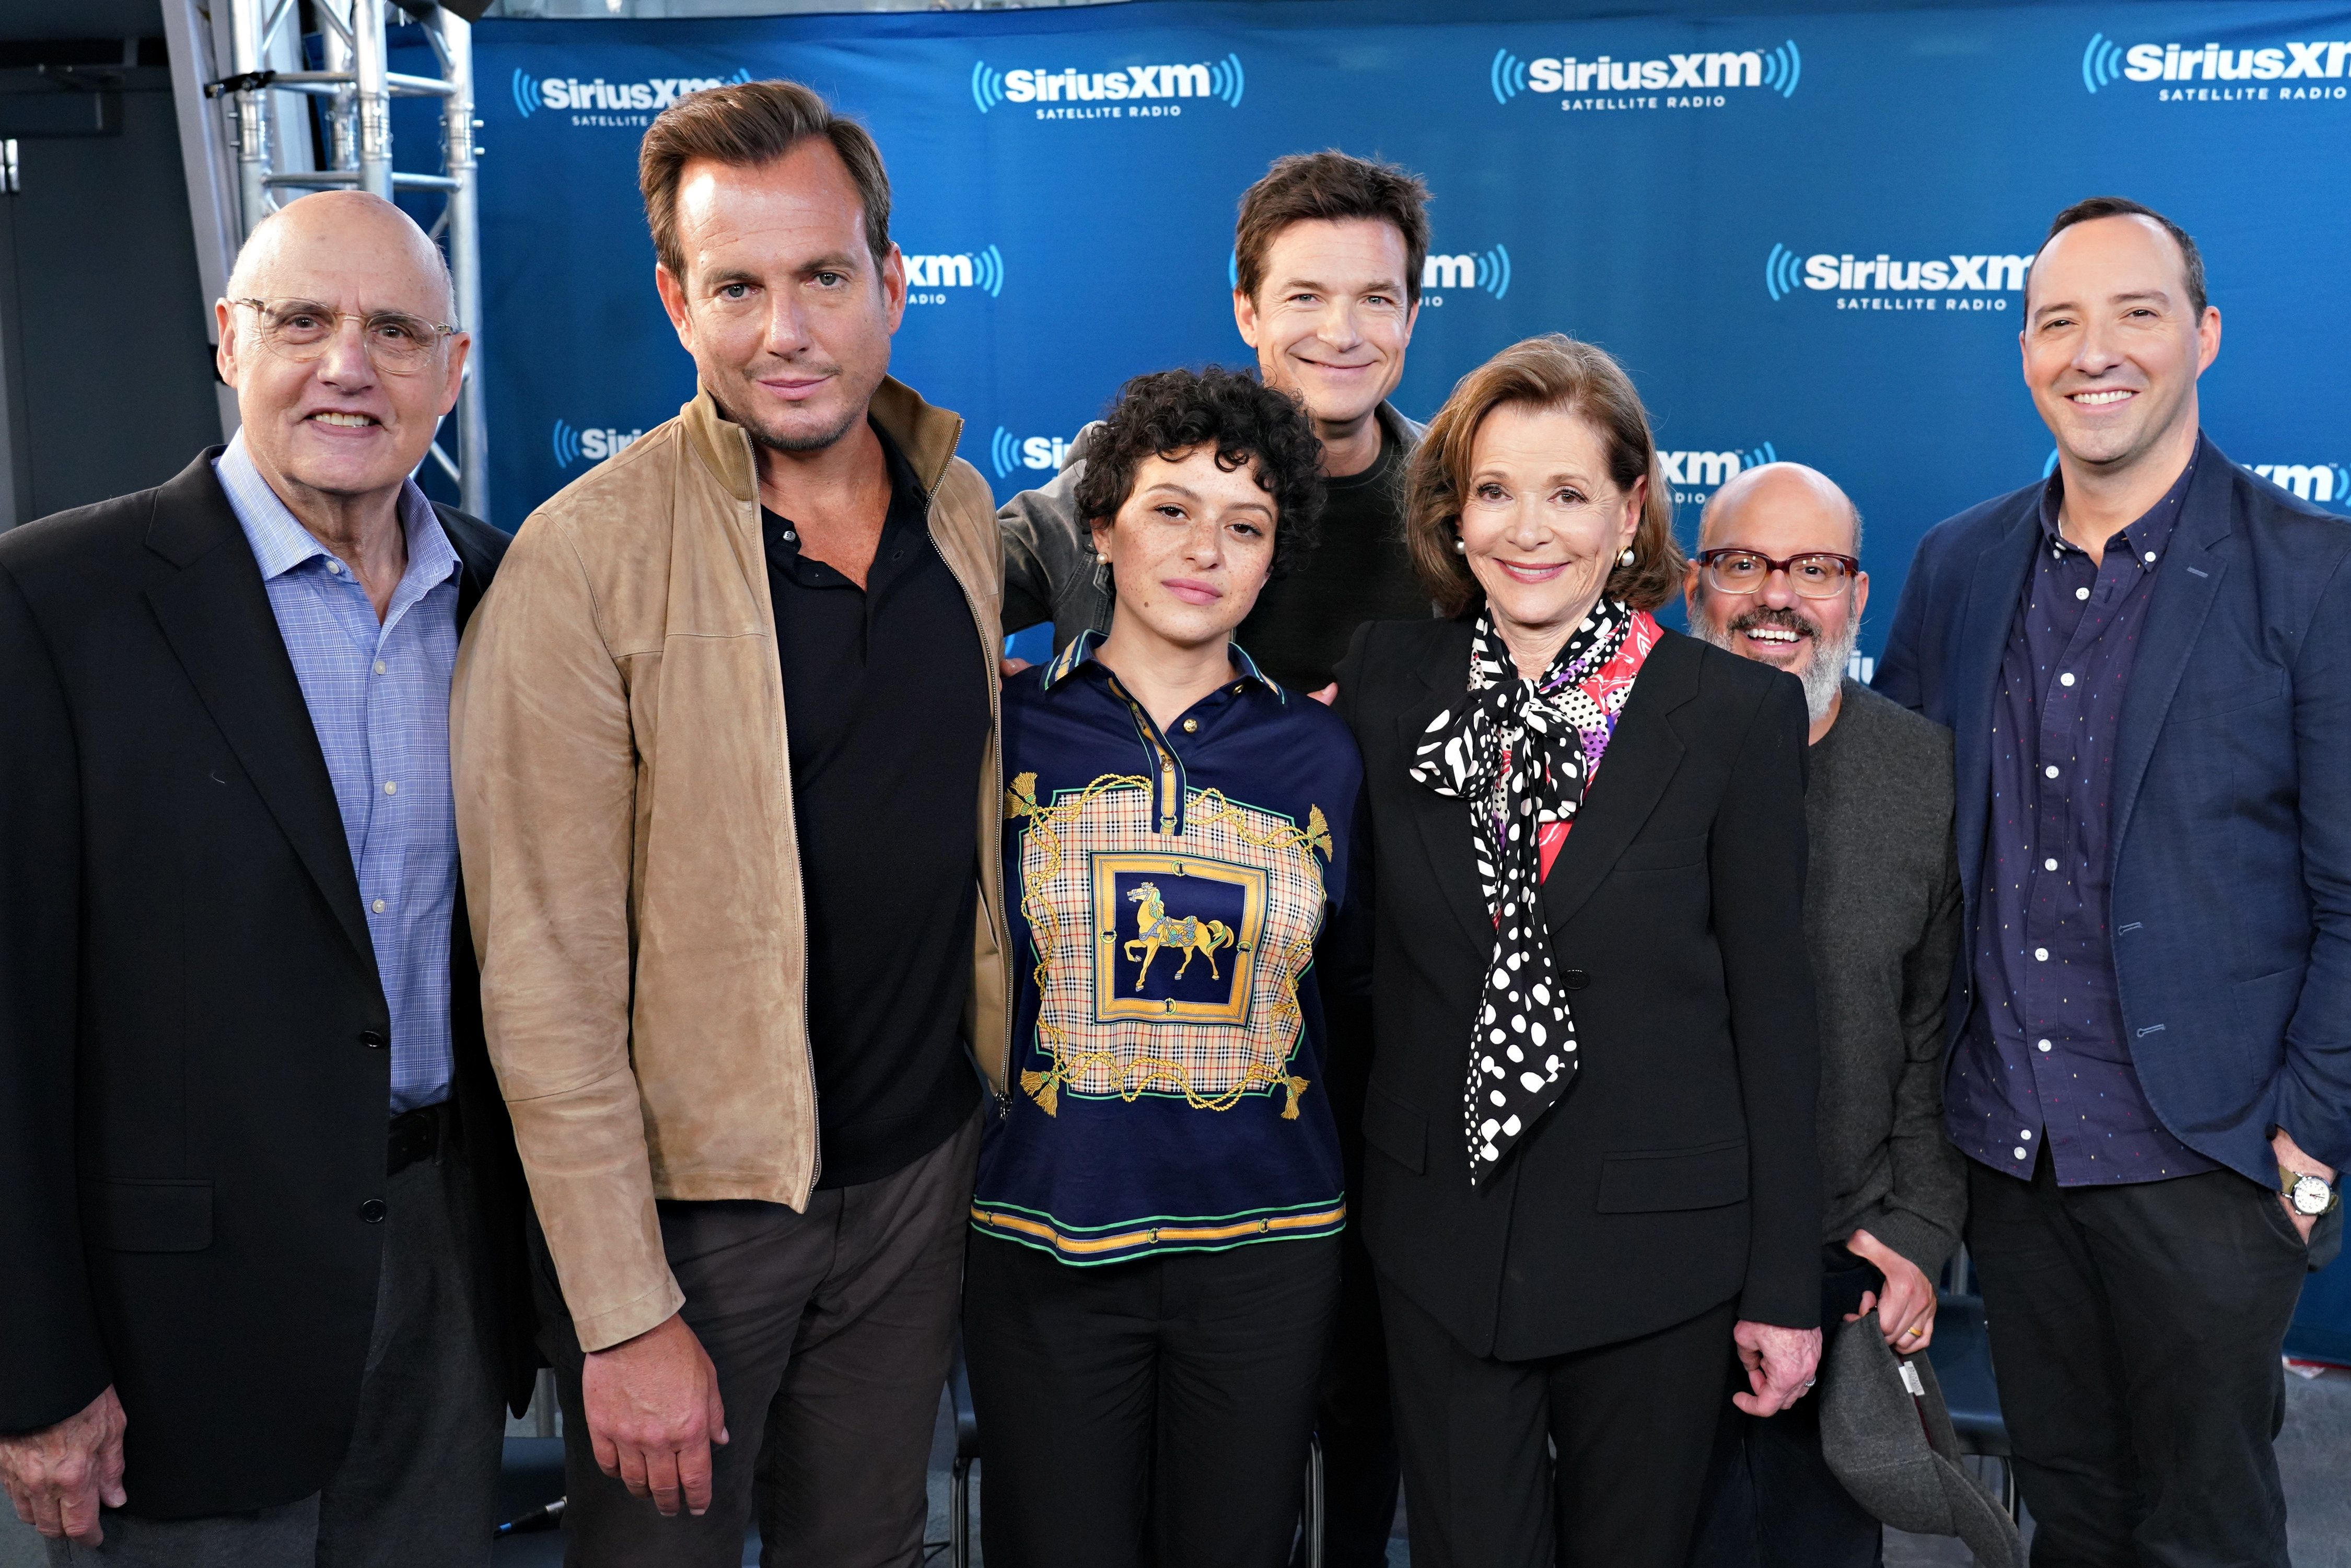 NEW YORK, NY - MAY 21:  (Back Row L-R) Jeffrey Tambor, Jason Bateman, Tony Hale, David Cross (Front Row L-R) Will Arnett, Alia Shawkat and Jessica Walter take part in SiriusXM's Town Hall with the cast of Arrested Development hosted by SiriusXM's Jessica Shaw at SiriusXM Studio on May 21, 2018 in New York City.  (Photo by Cindy Ord/Getty Images for SiriusXM)